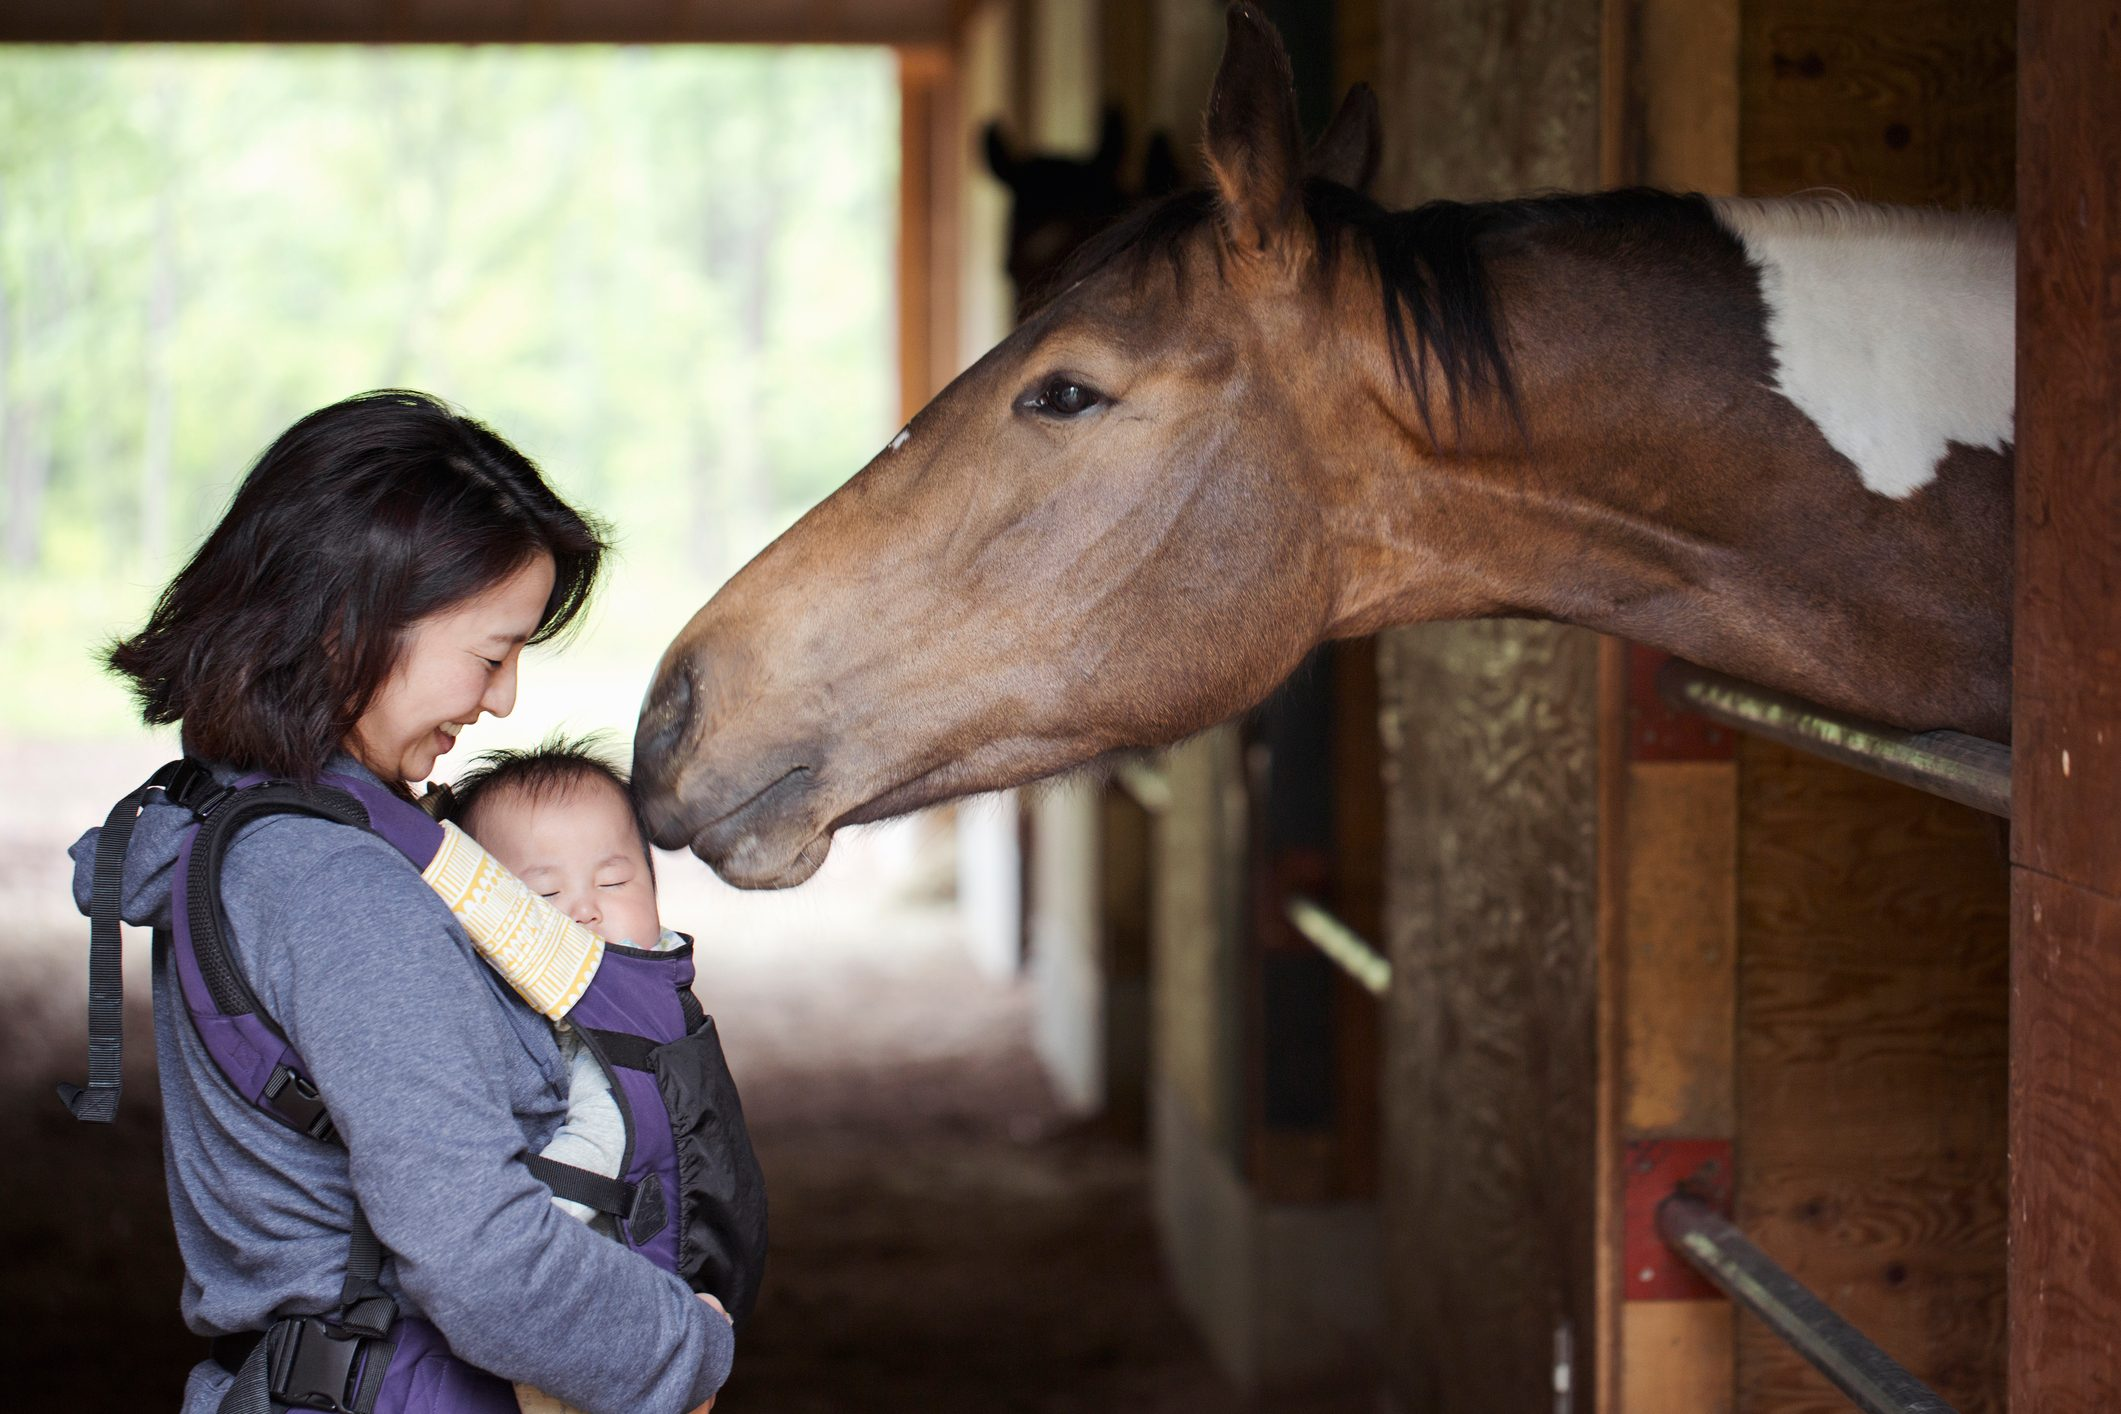 horse and human bond concept